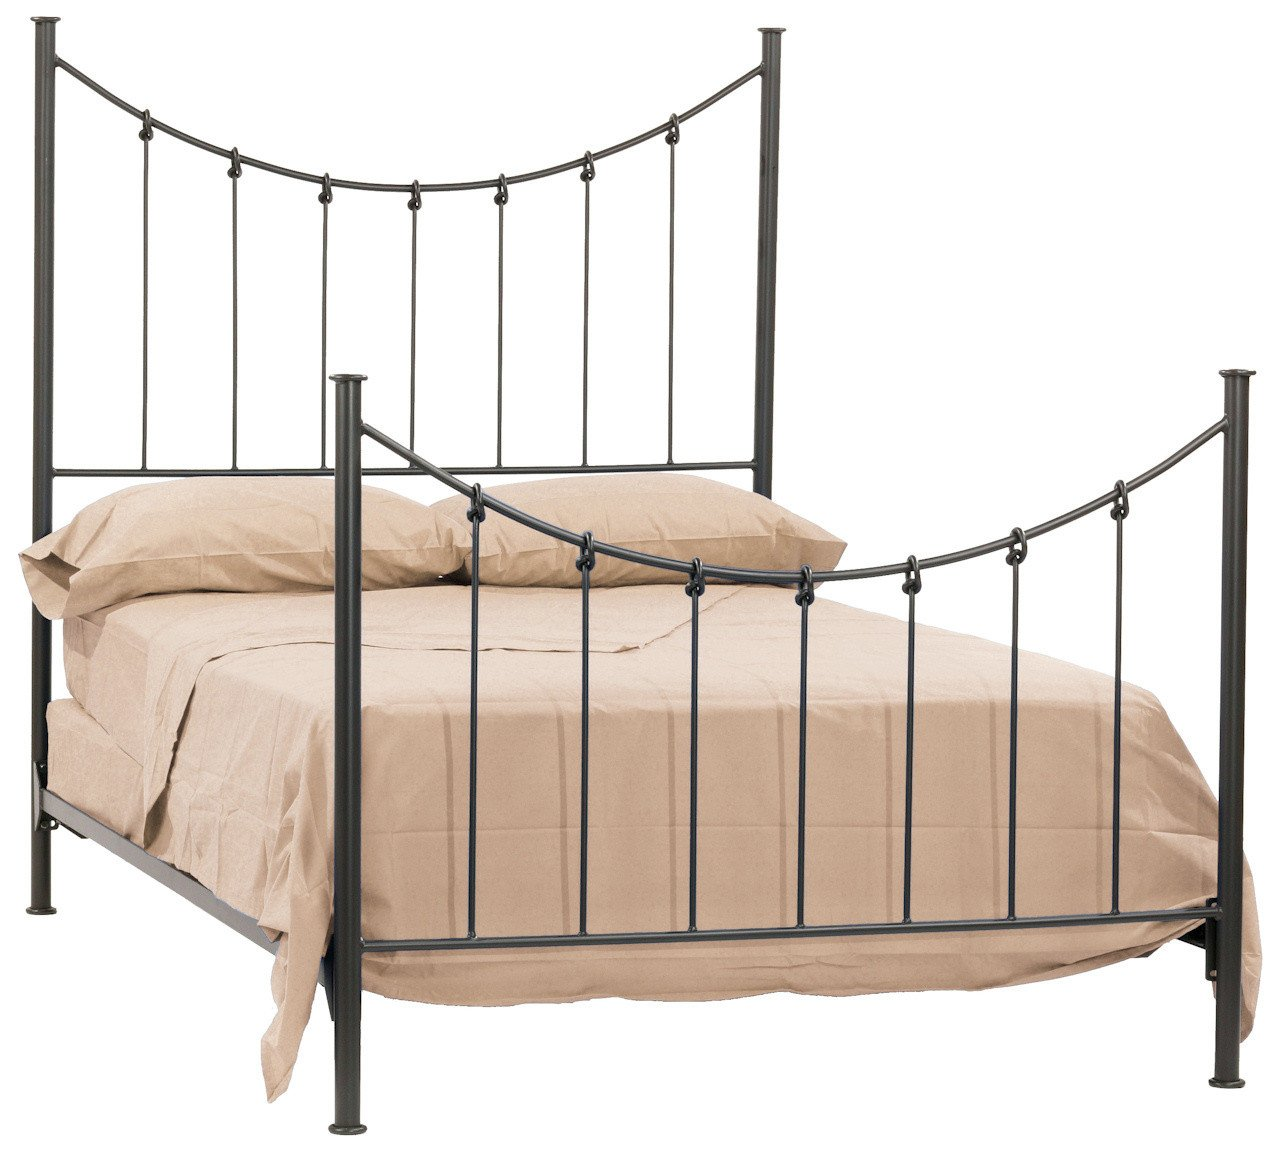 Iron Full Bed Knot - Stone County Bed Image